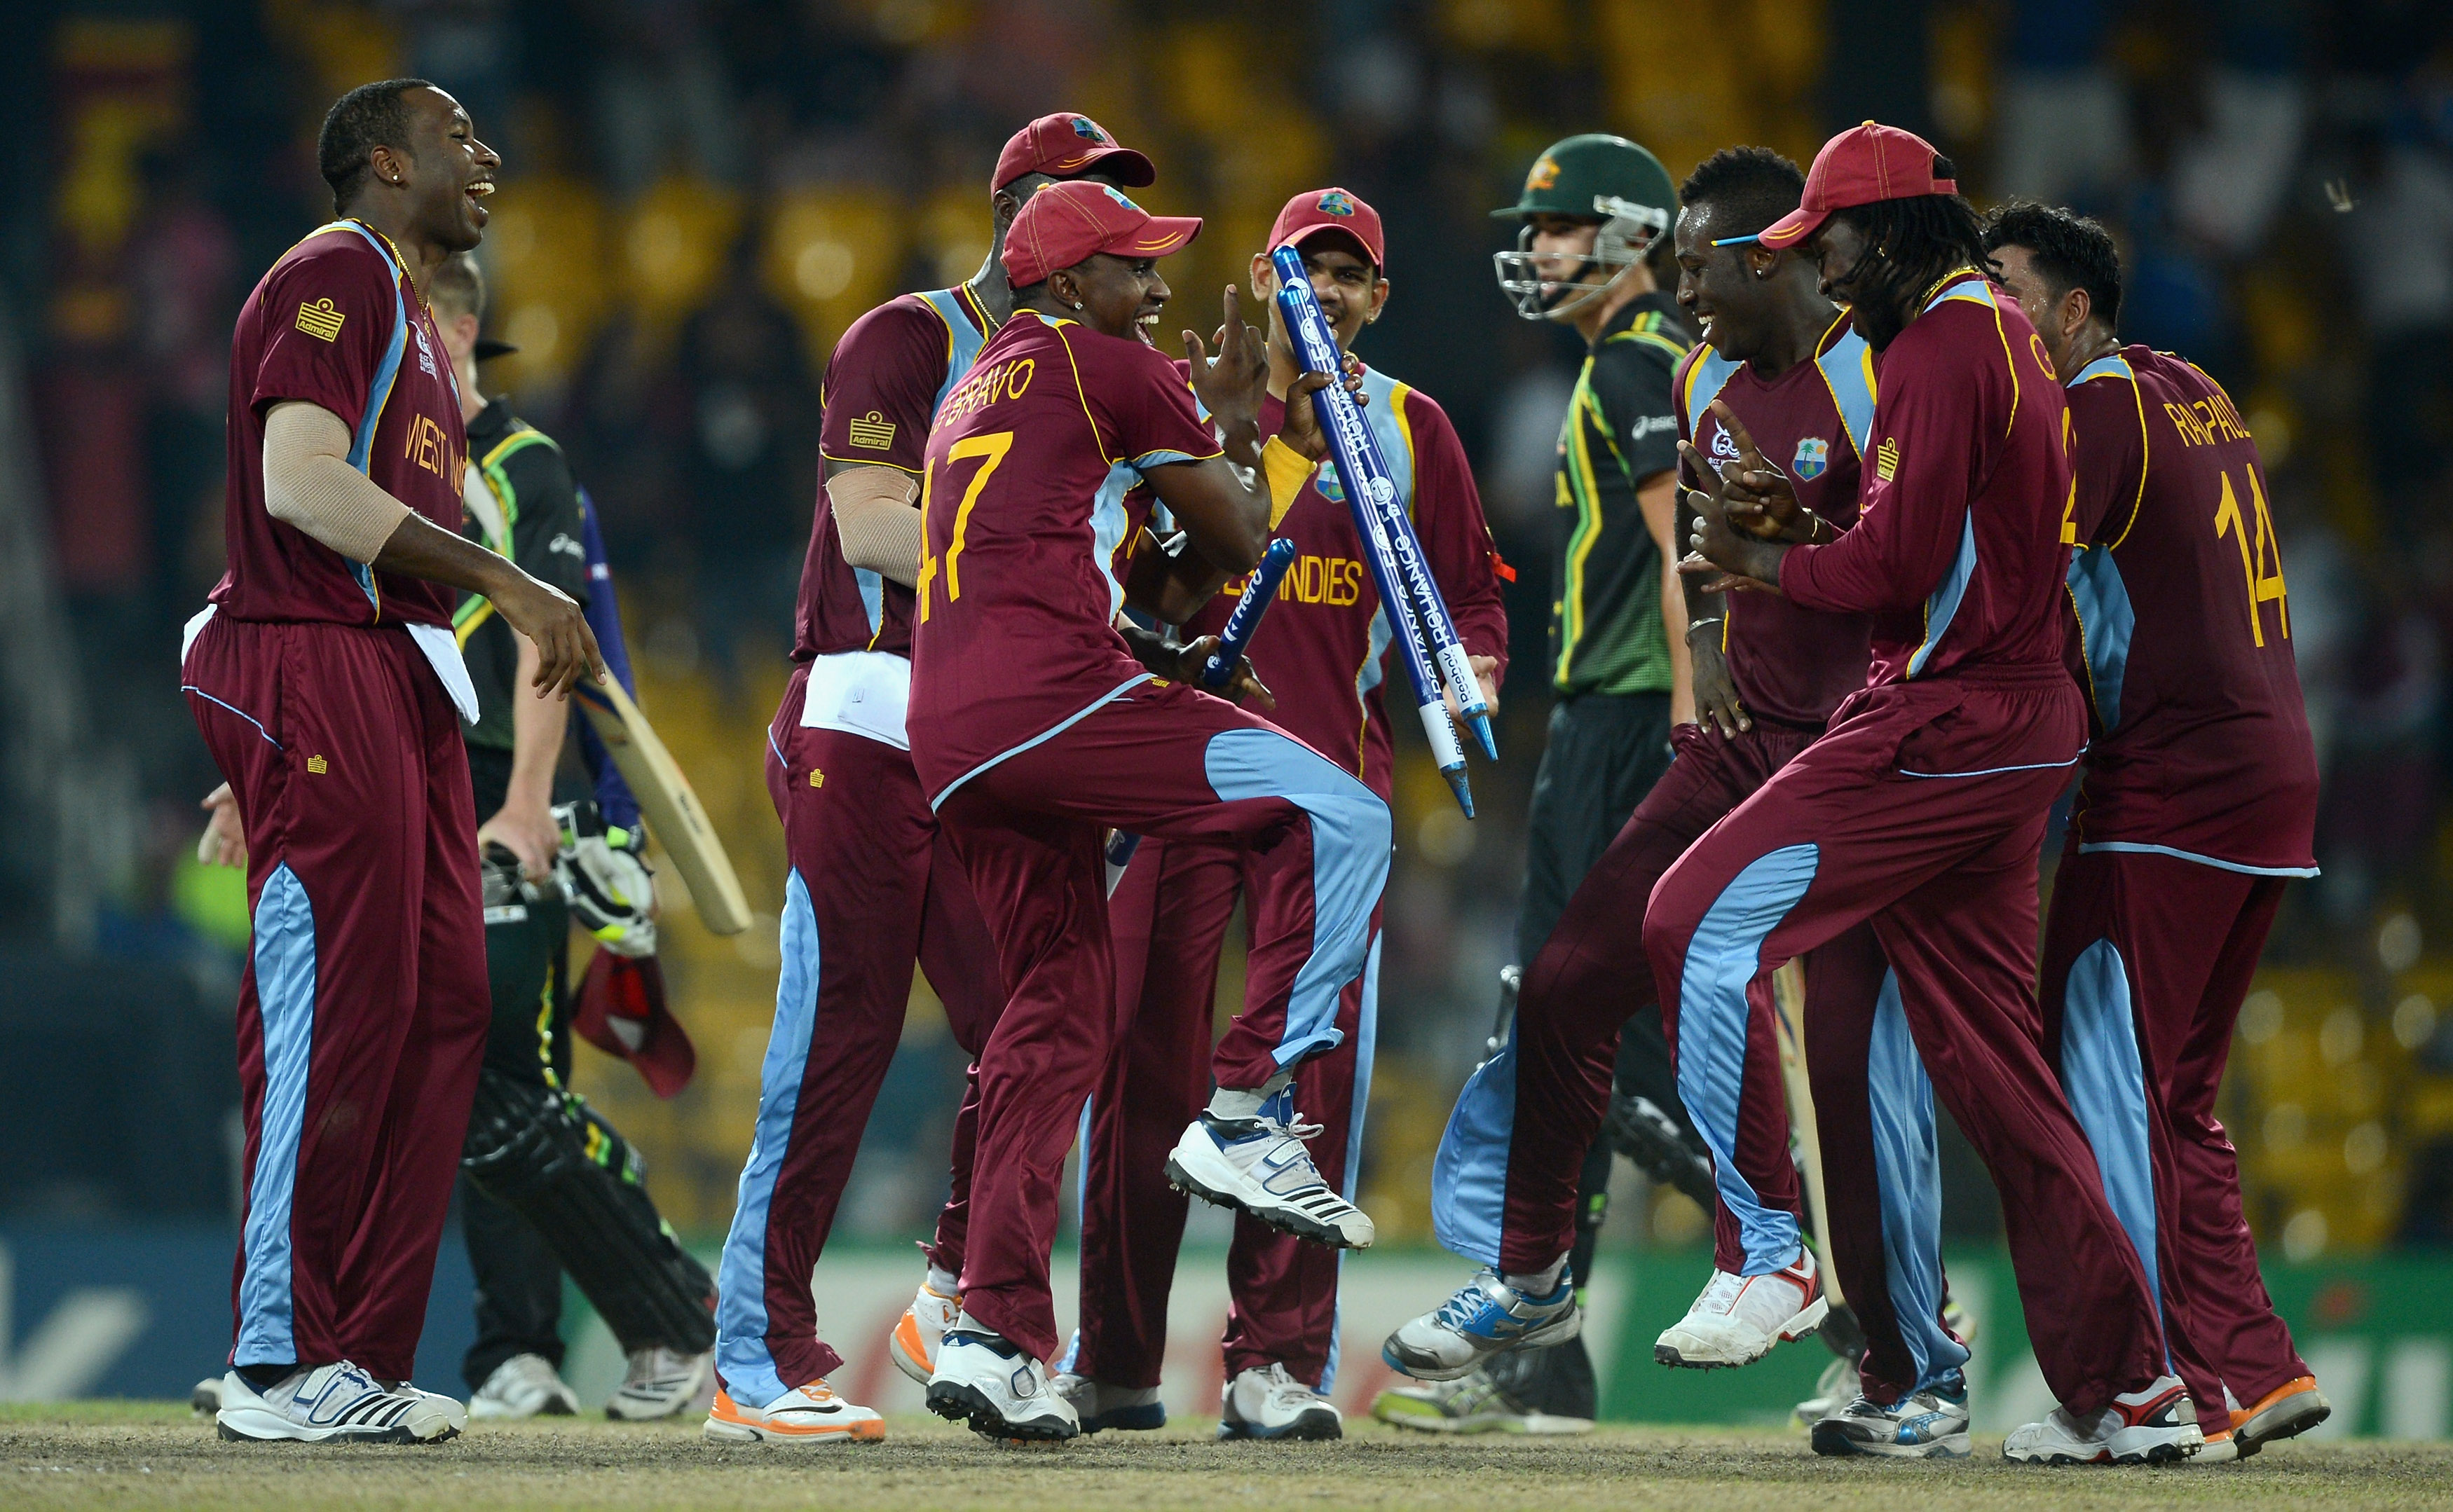 COLOMBO, SRI LANKA - OCTOBER 05: West Indies dance in celebration after winning the ICC World Twenty20 2012 Semi Final between Australia and the West Indies at R. Premadasa Stadium on October 5, 2012 in Colombo, Sri Lanka. (Photo by Gareth Copley/Getty Images)